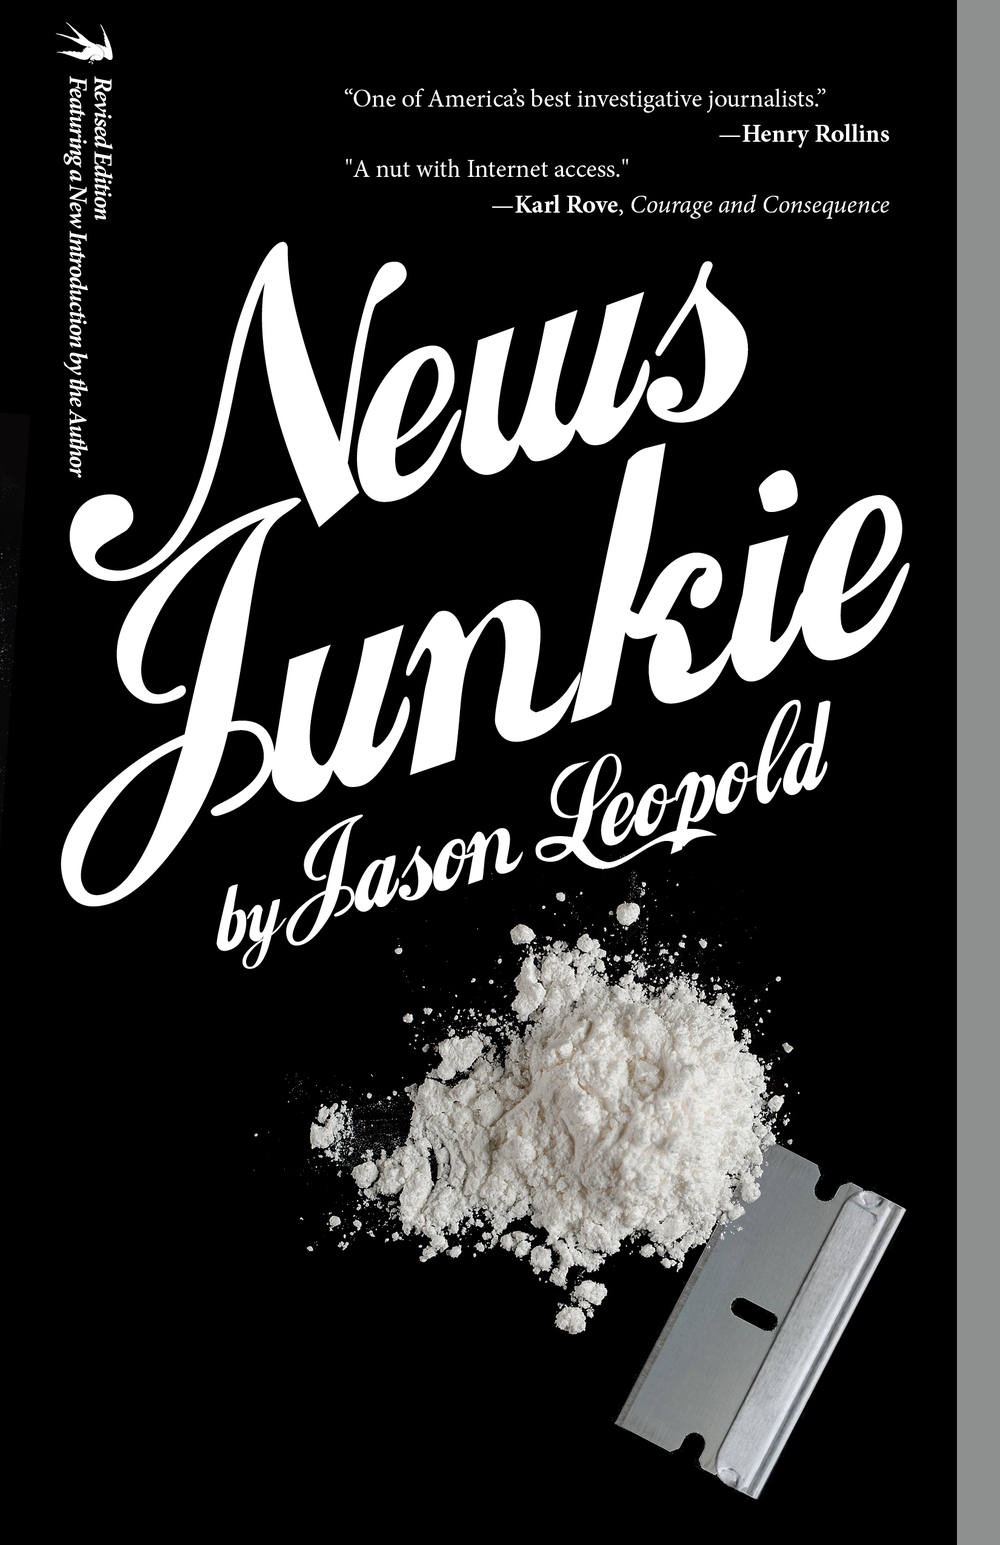 News Junkie shows how a man once fueled by raging fear and self-hatred transforms his life, regenerated by love, sobriety and a new, harmonious career with the media.